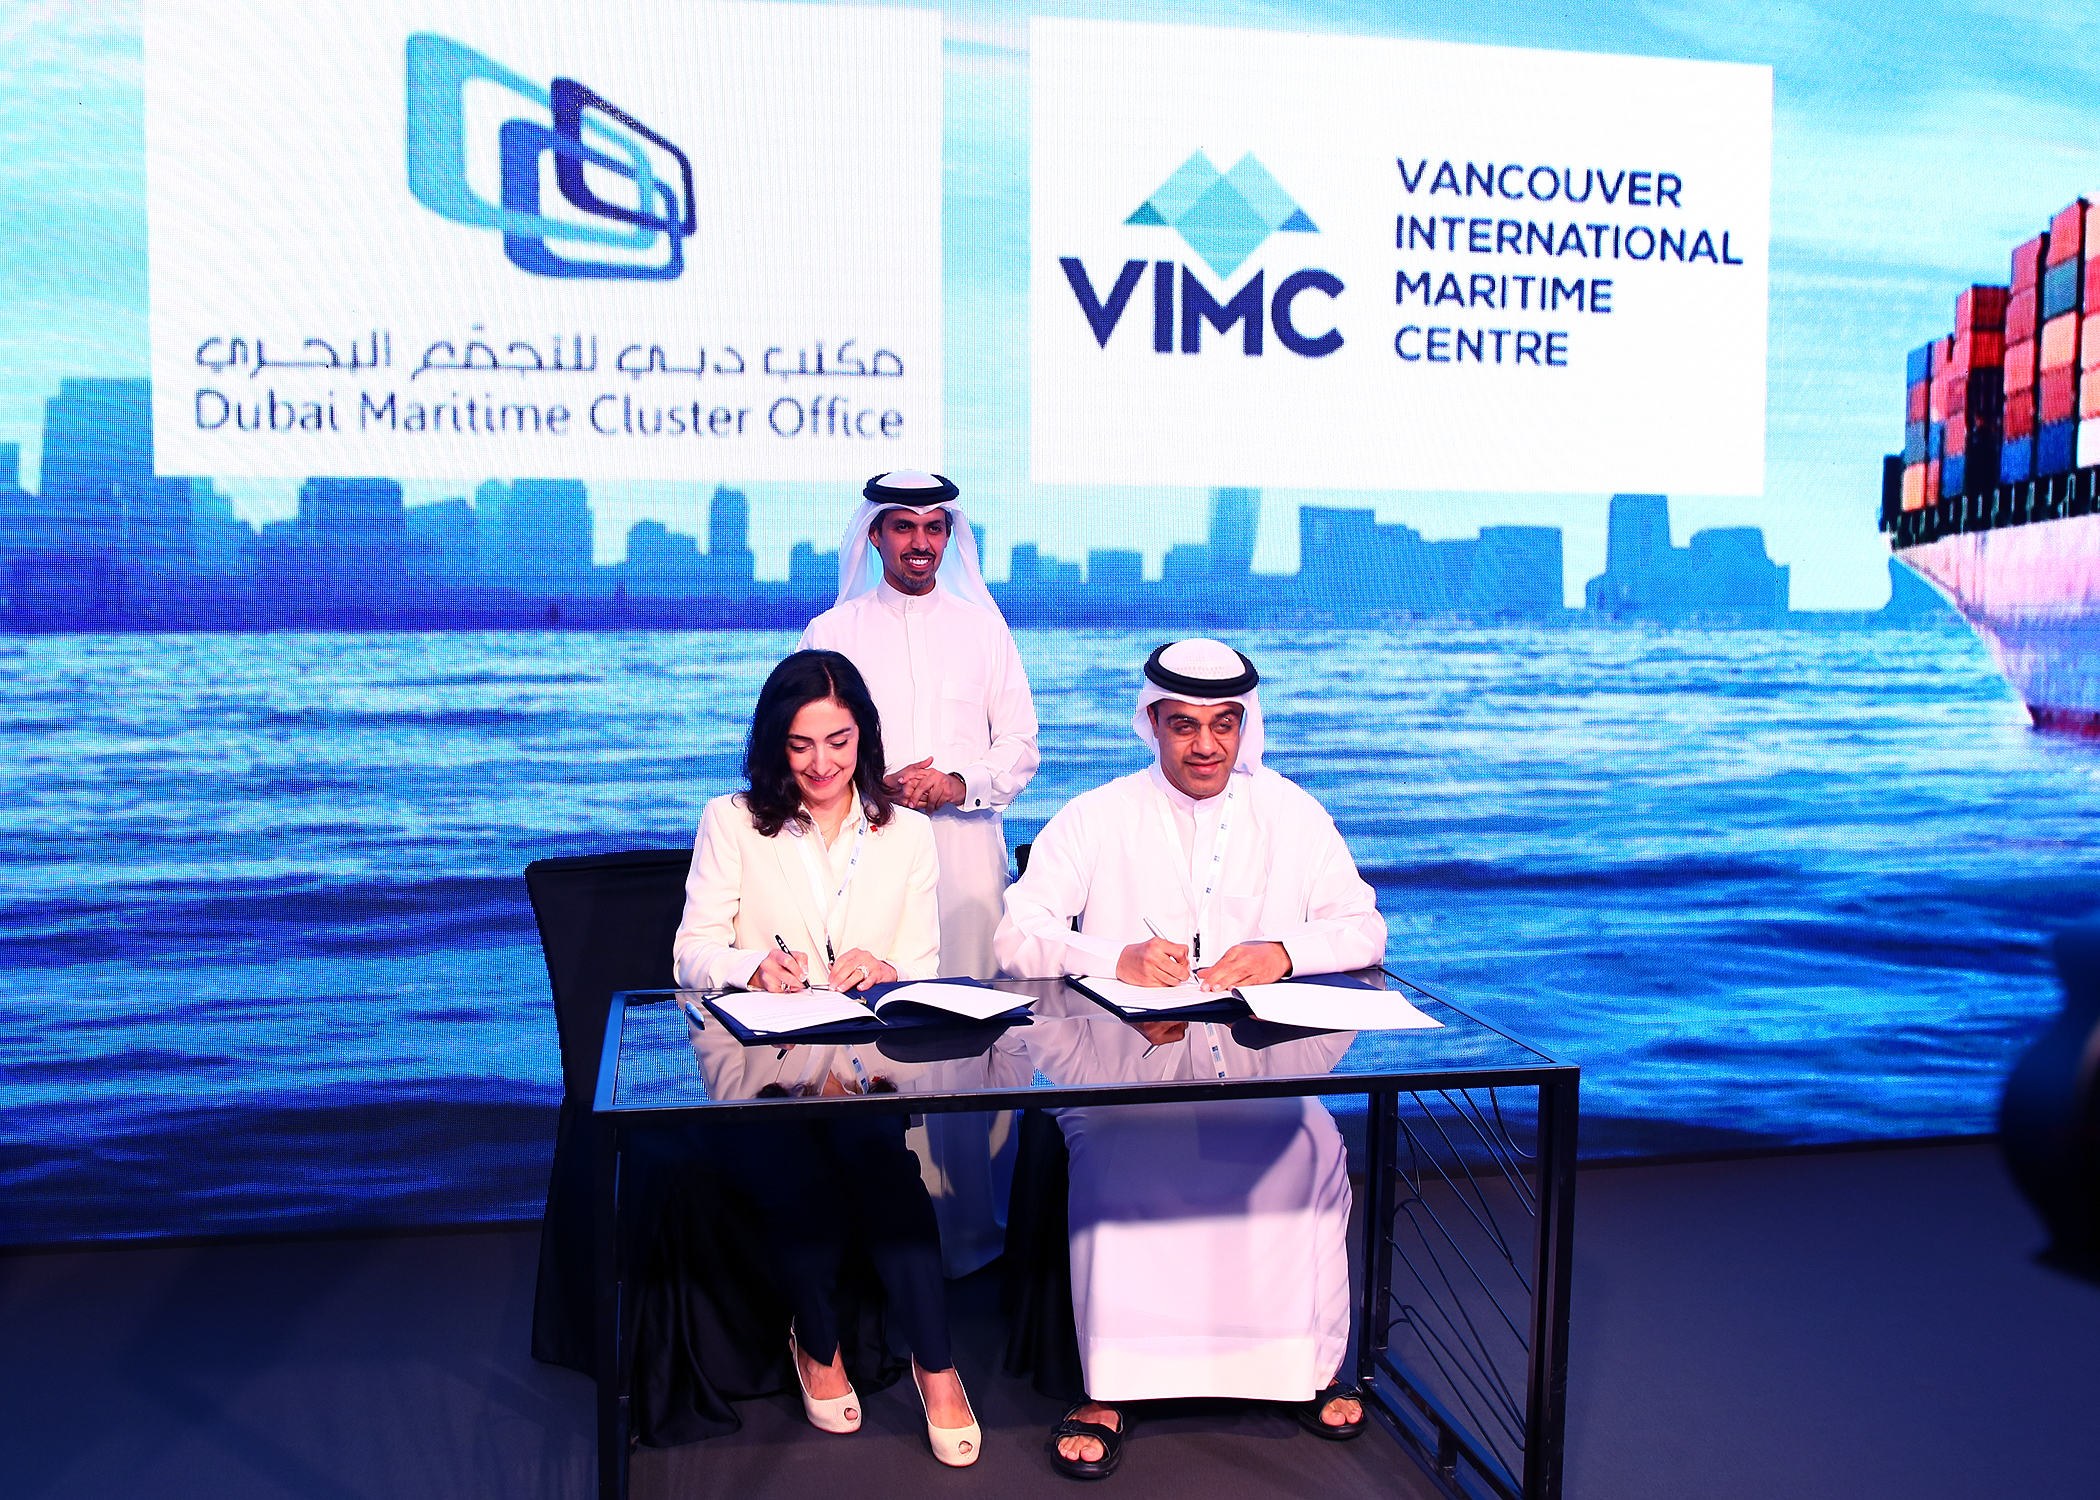 Dubai Maritime Agenda 2017, Canada and Dubai sign MOU, Dubai October 2017